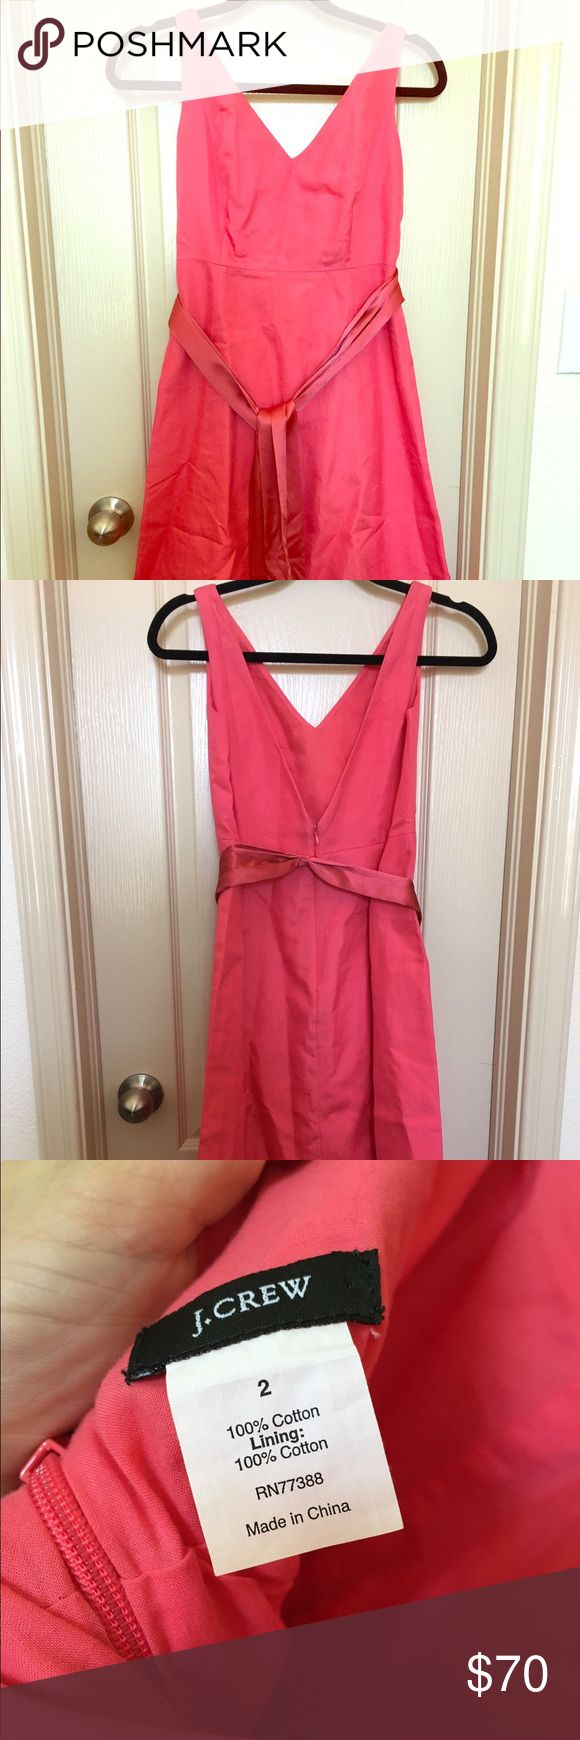 Jcrew coral cocktail dress Never worn JCrew cocktail dress, size 2 in coral with matching sash. J. Crew Dresses Midi